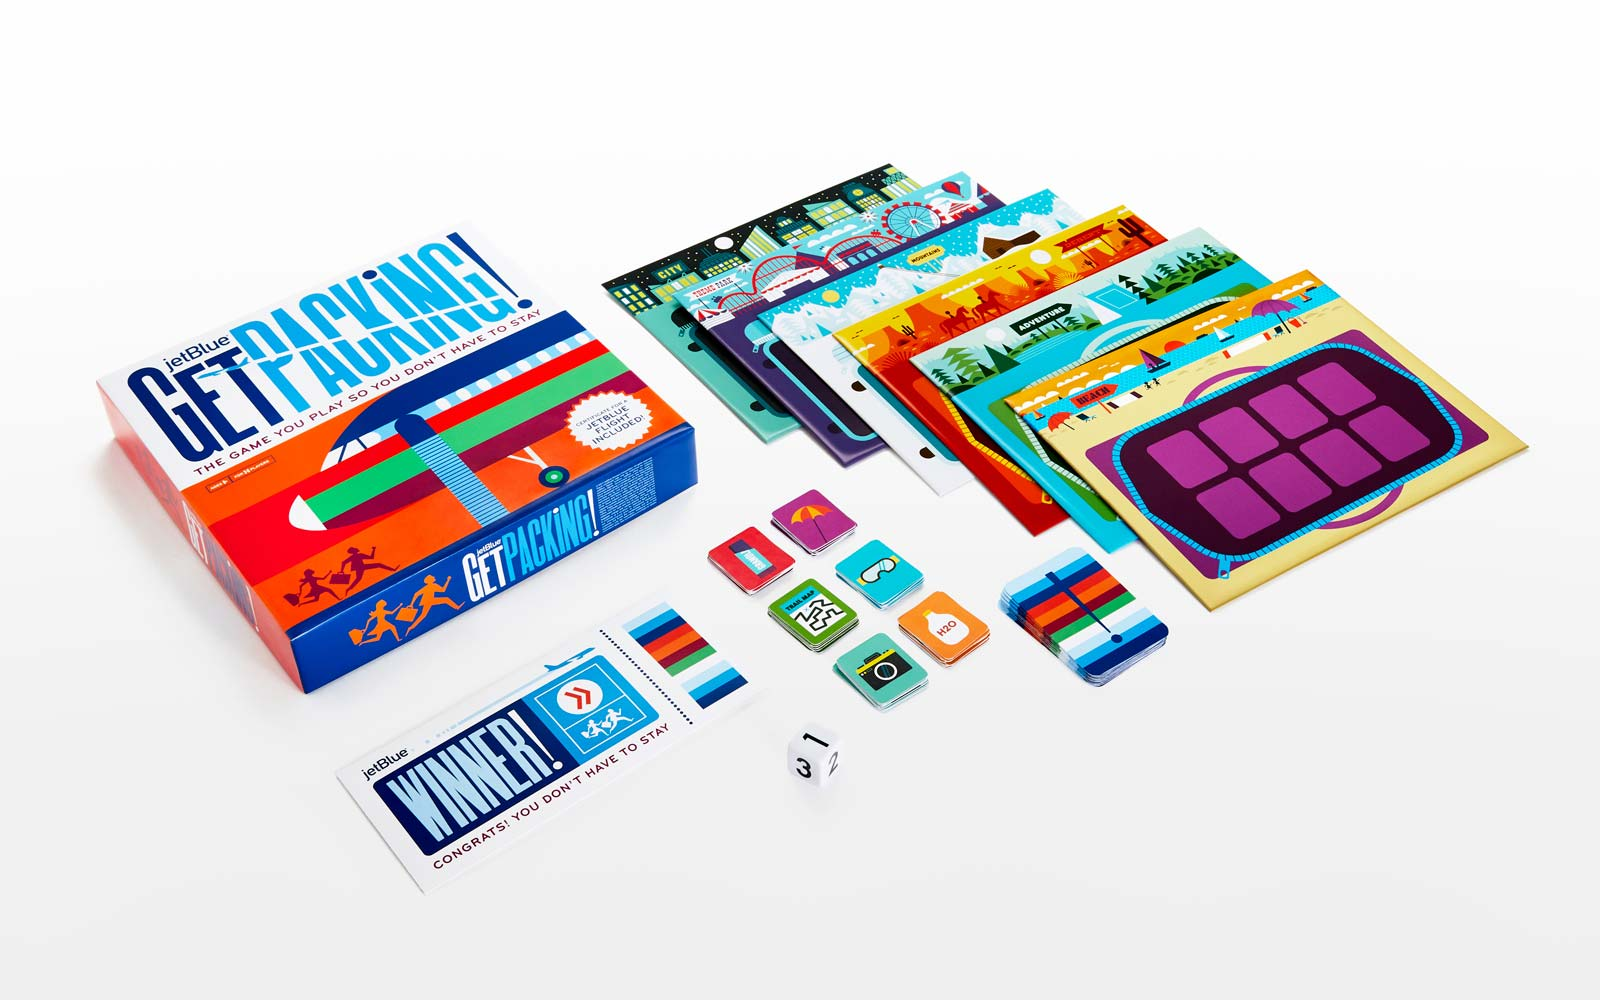 Get Packing JetBlue Board Game Holidays Flights